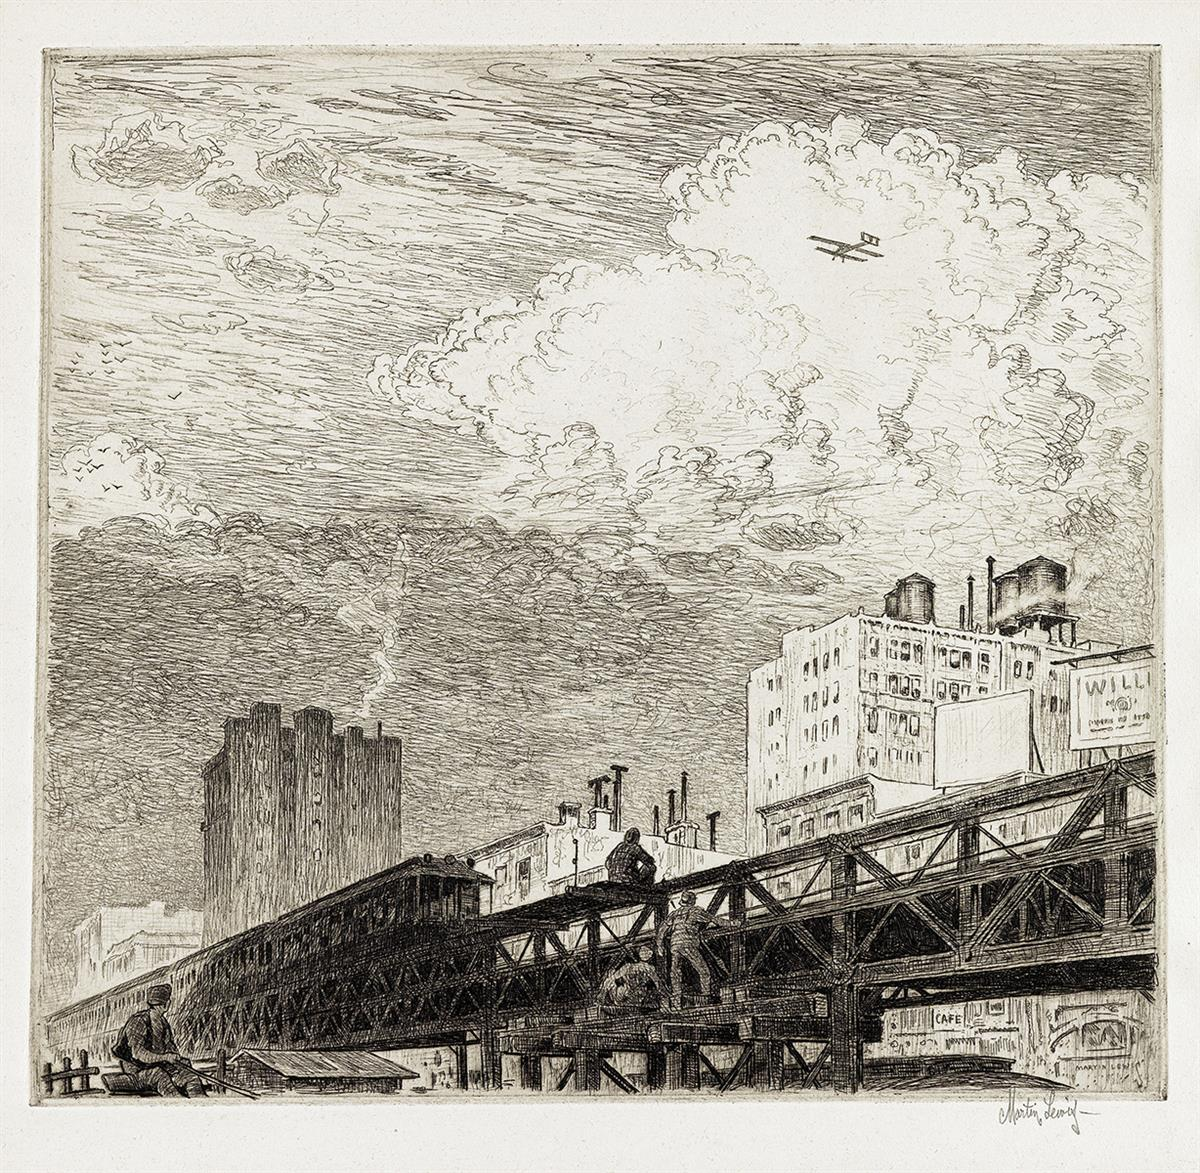 MARTIN LEWIS Men Working on Elevated Train Tracks, Looking at Airplane in Sky.